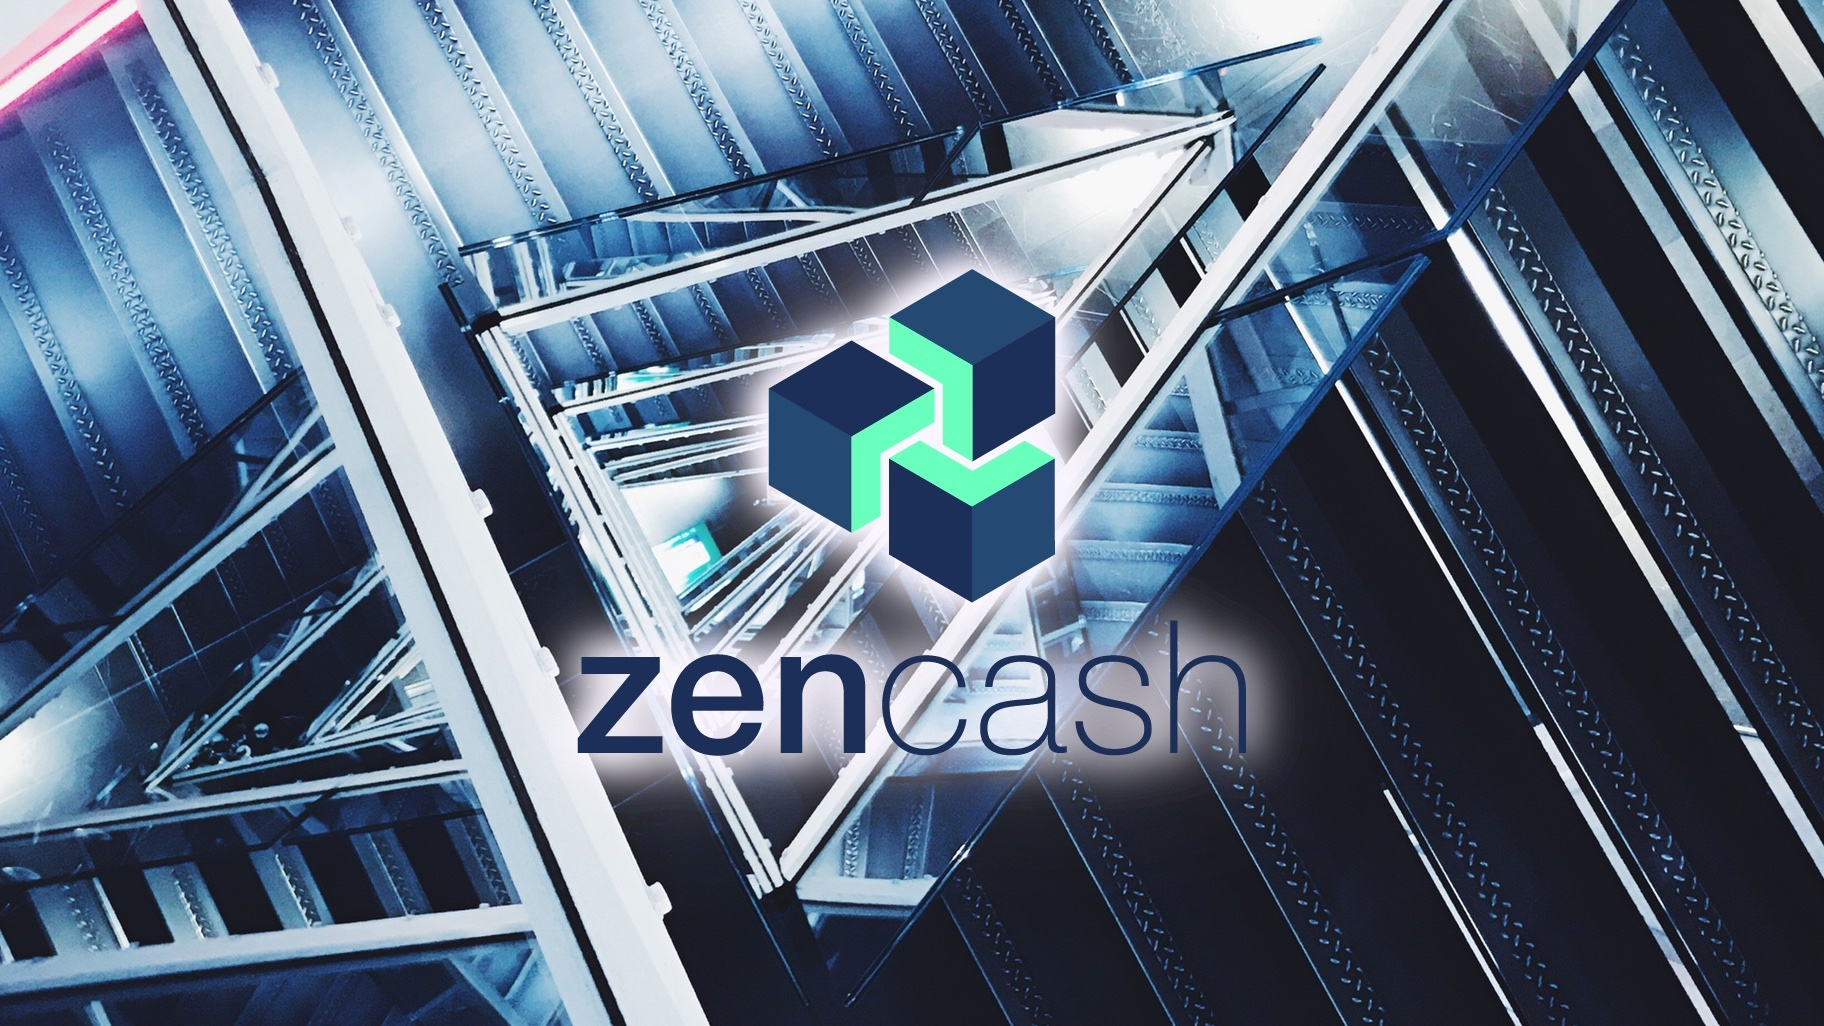 ZenCash takes the next step in decentralization with their Treasury System